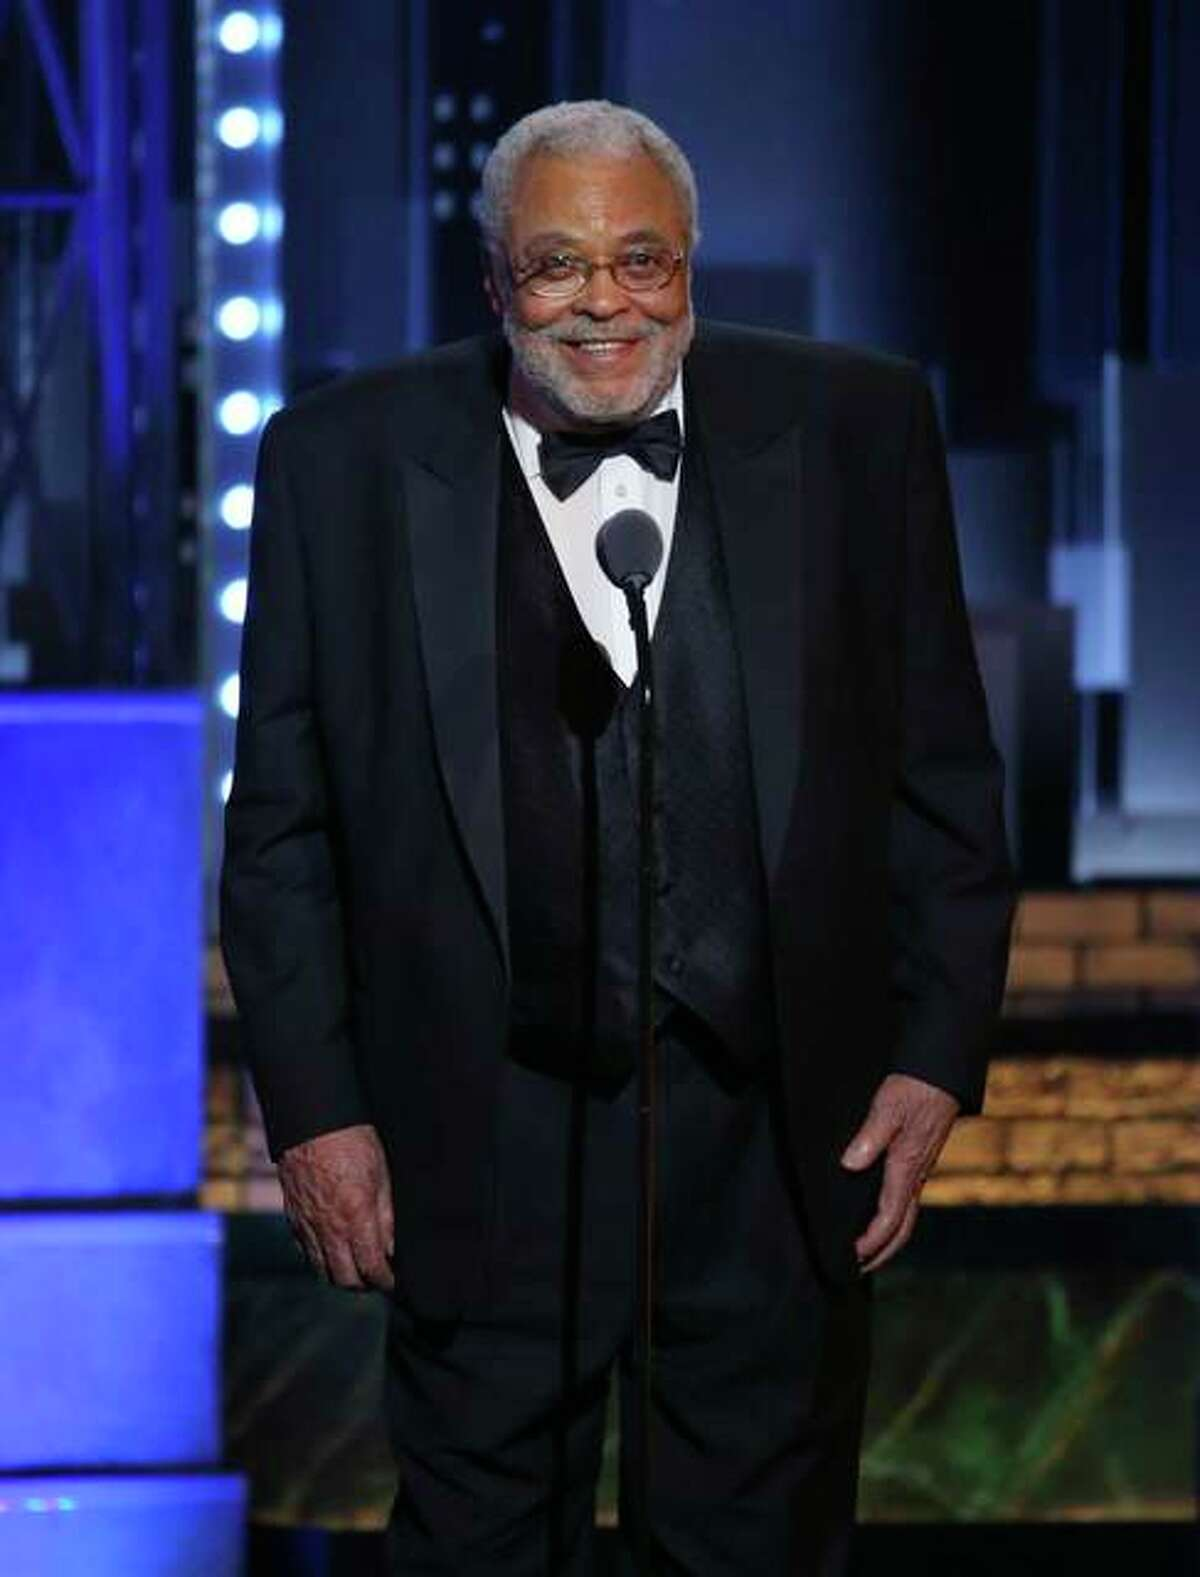 James Earl Jones accepts the special Tony Award for Lifetime Achievement in the Theatre at the 71st annual Tony Awards on June 11, 2017, in New York. Jones turned 90 on Jan. 17.